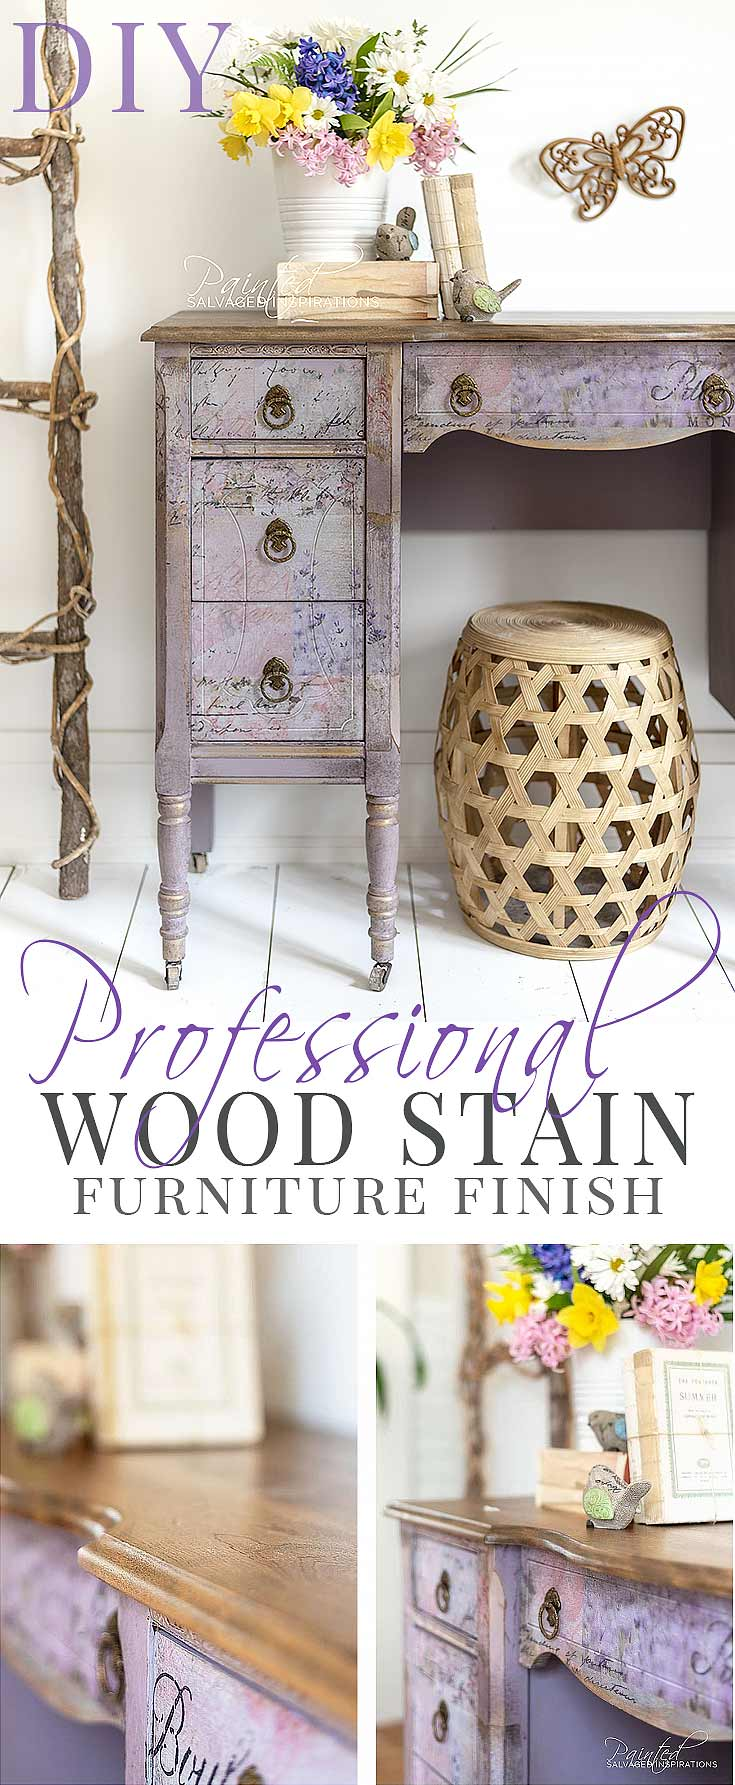 How To Get A Professional Stain Finish - Best Sander + Gel Stain